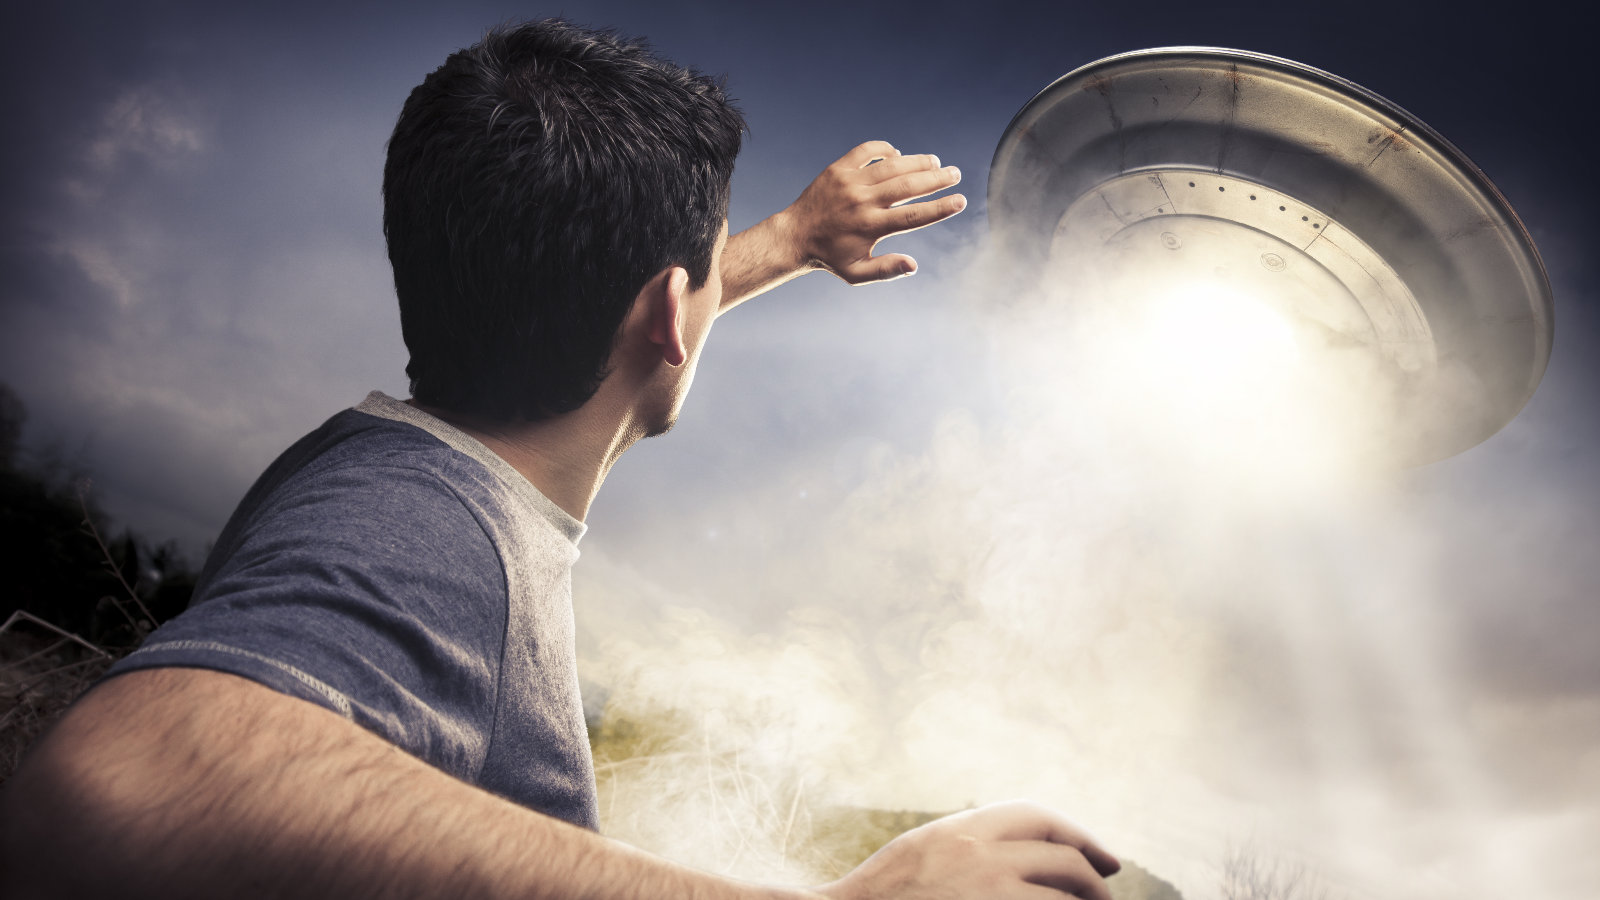 Click here to read How To Prove You've Been Abducted by Aliens